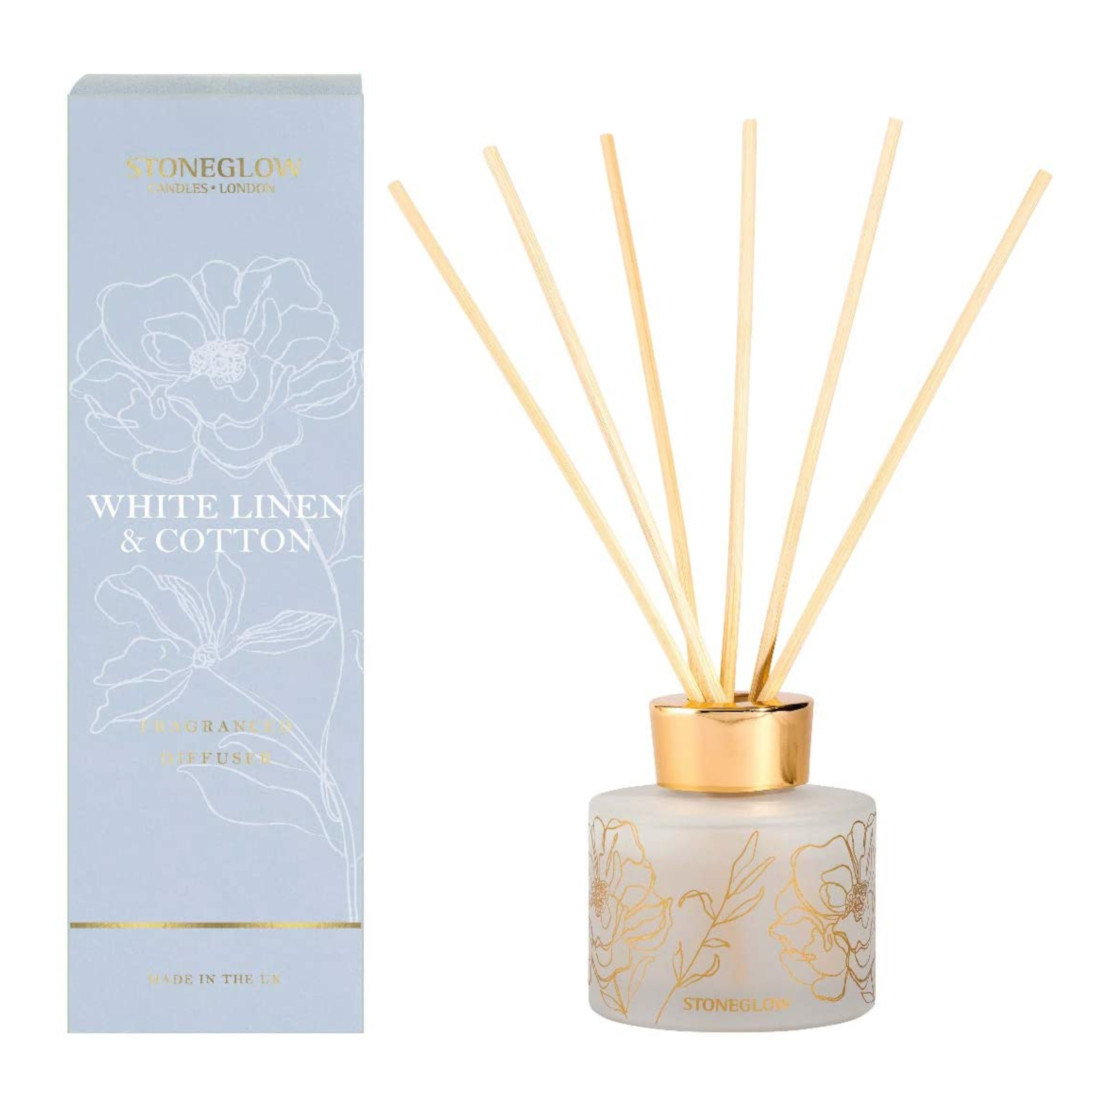 Stoneglow Day Flower White Linen & Cotton Reed Diffuser